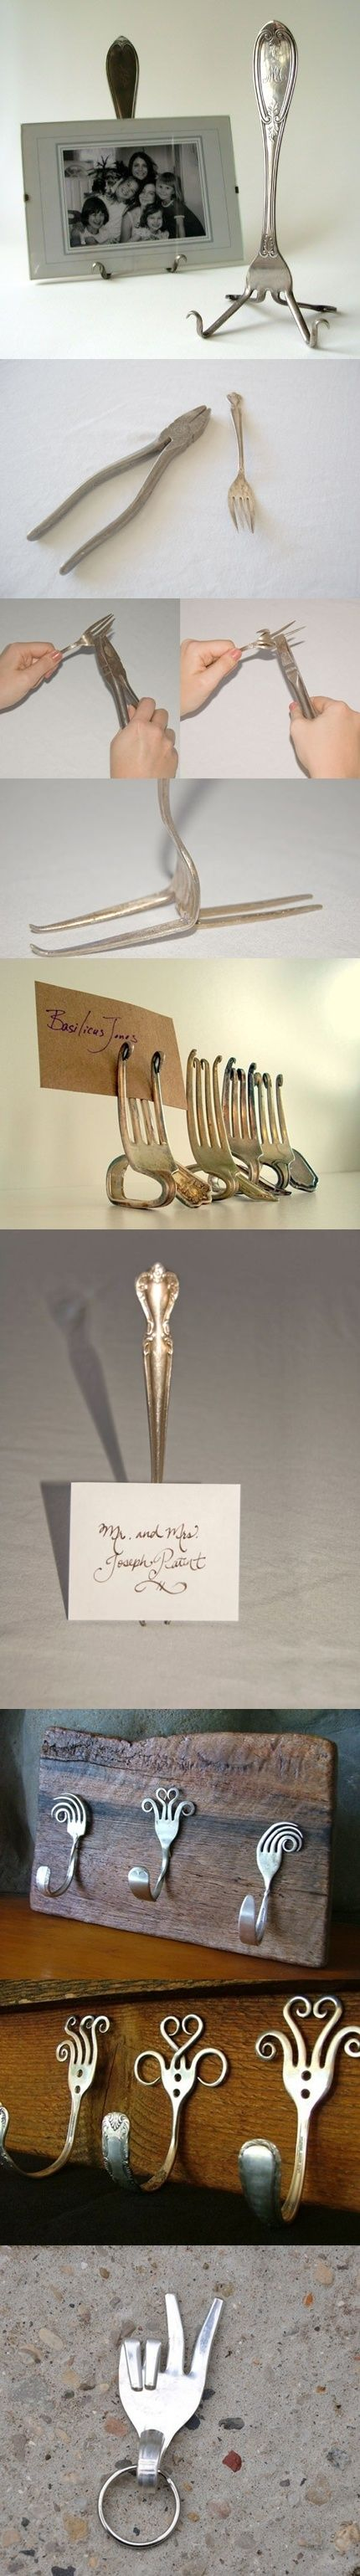 DIY Fork Art Scour up some old forks and use a pair of pliers and elbow grease to form them into whatever shape you like!